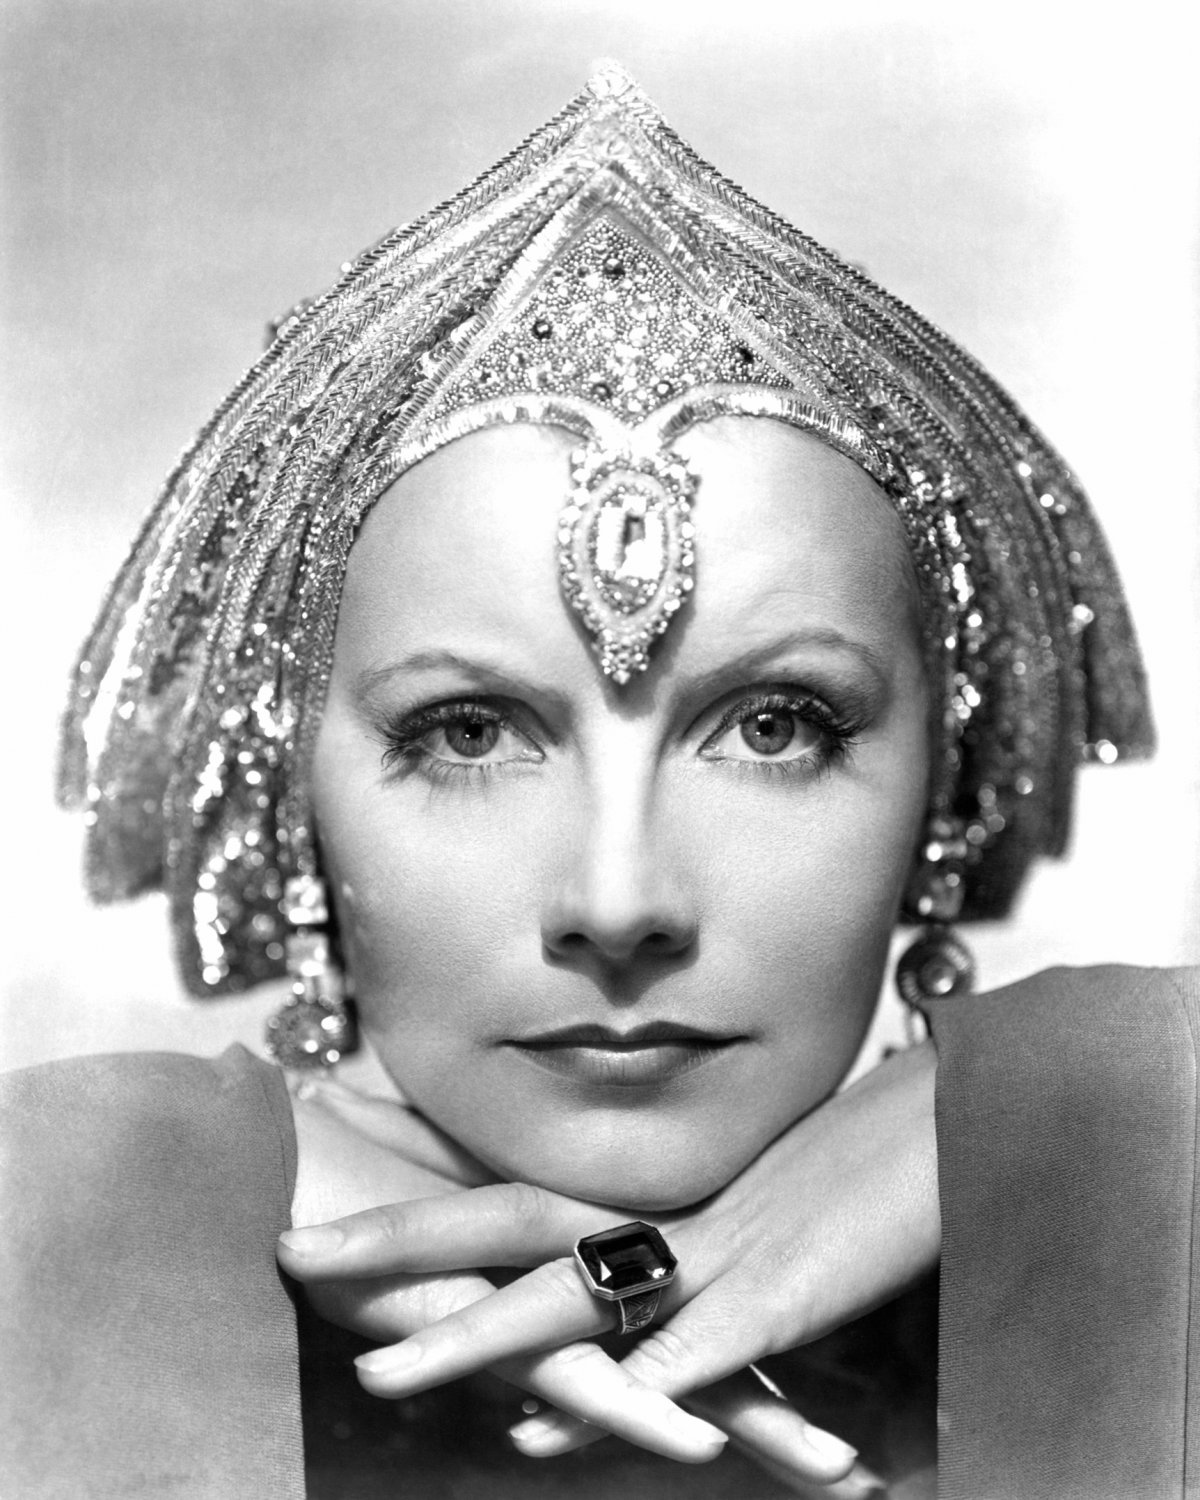 LEGENDARY ACTRESS GRETA GARBO IN 'MATA HARI' - 8X10 PUBLICITY PHOTO (AA-202)